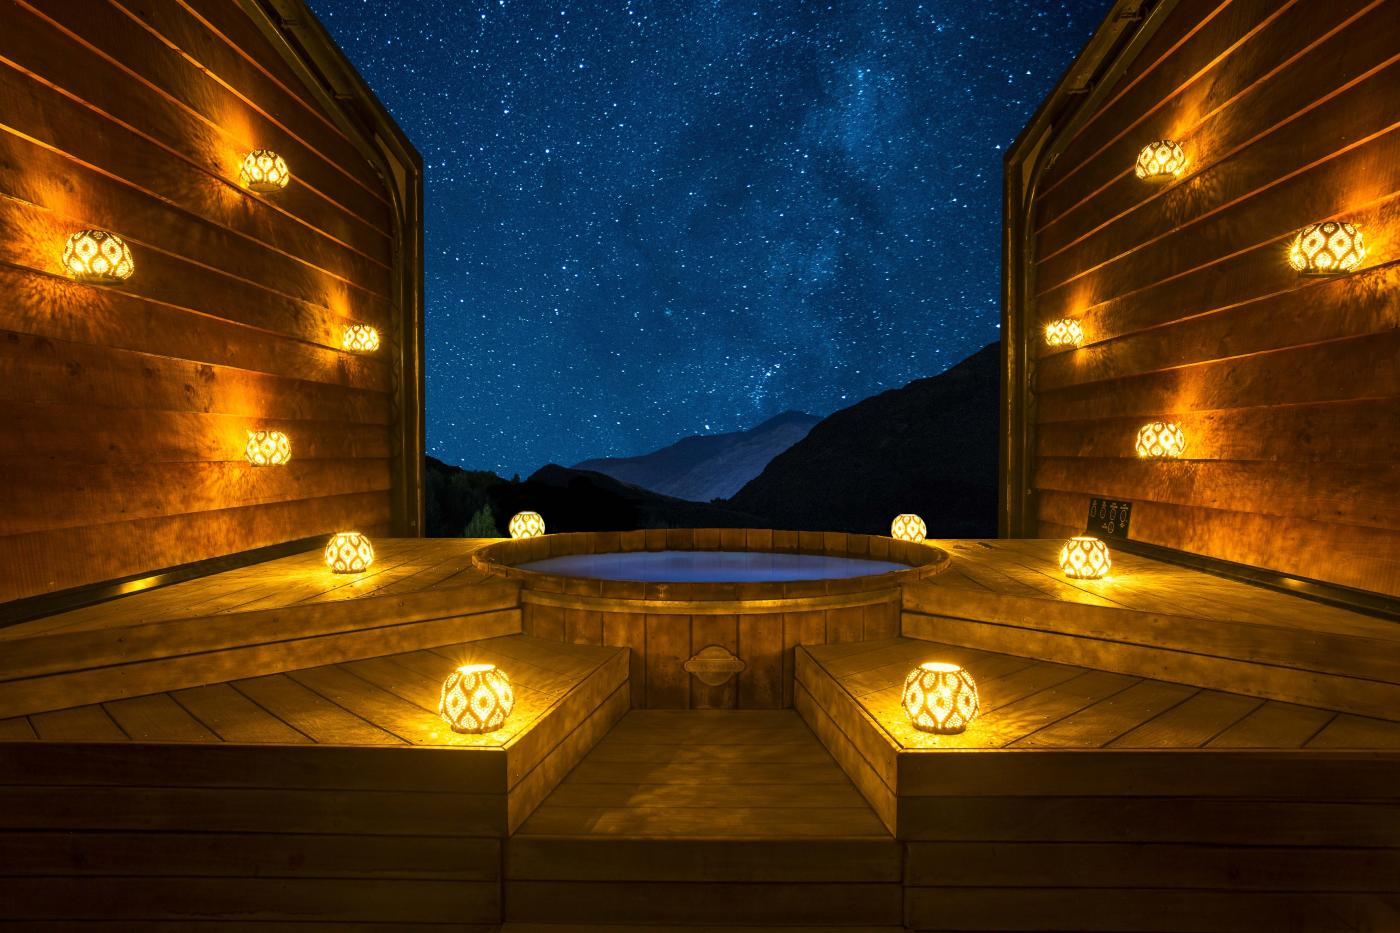 Onsen Hot Pool Night Experience by candlelight